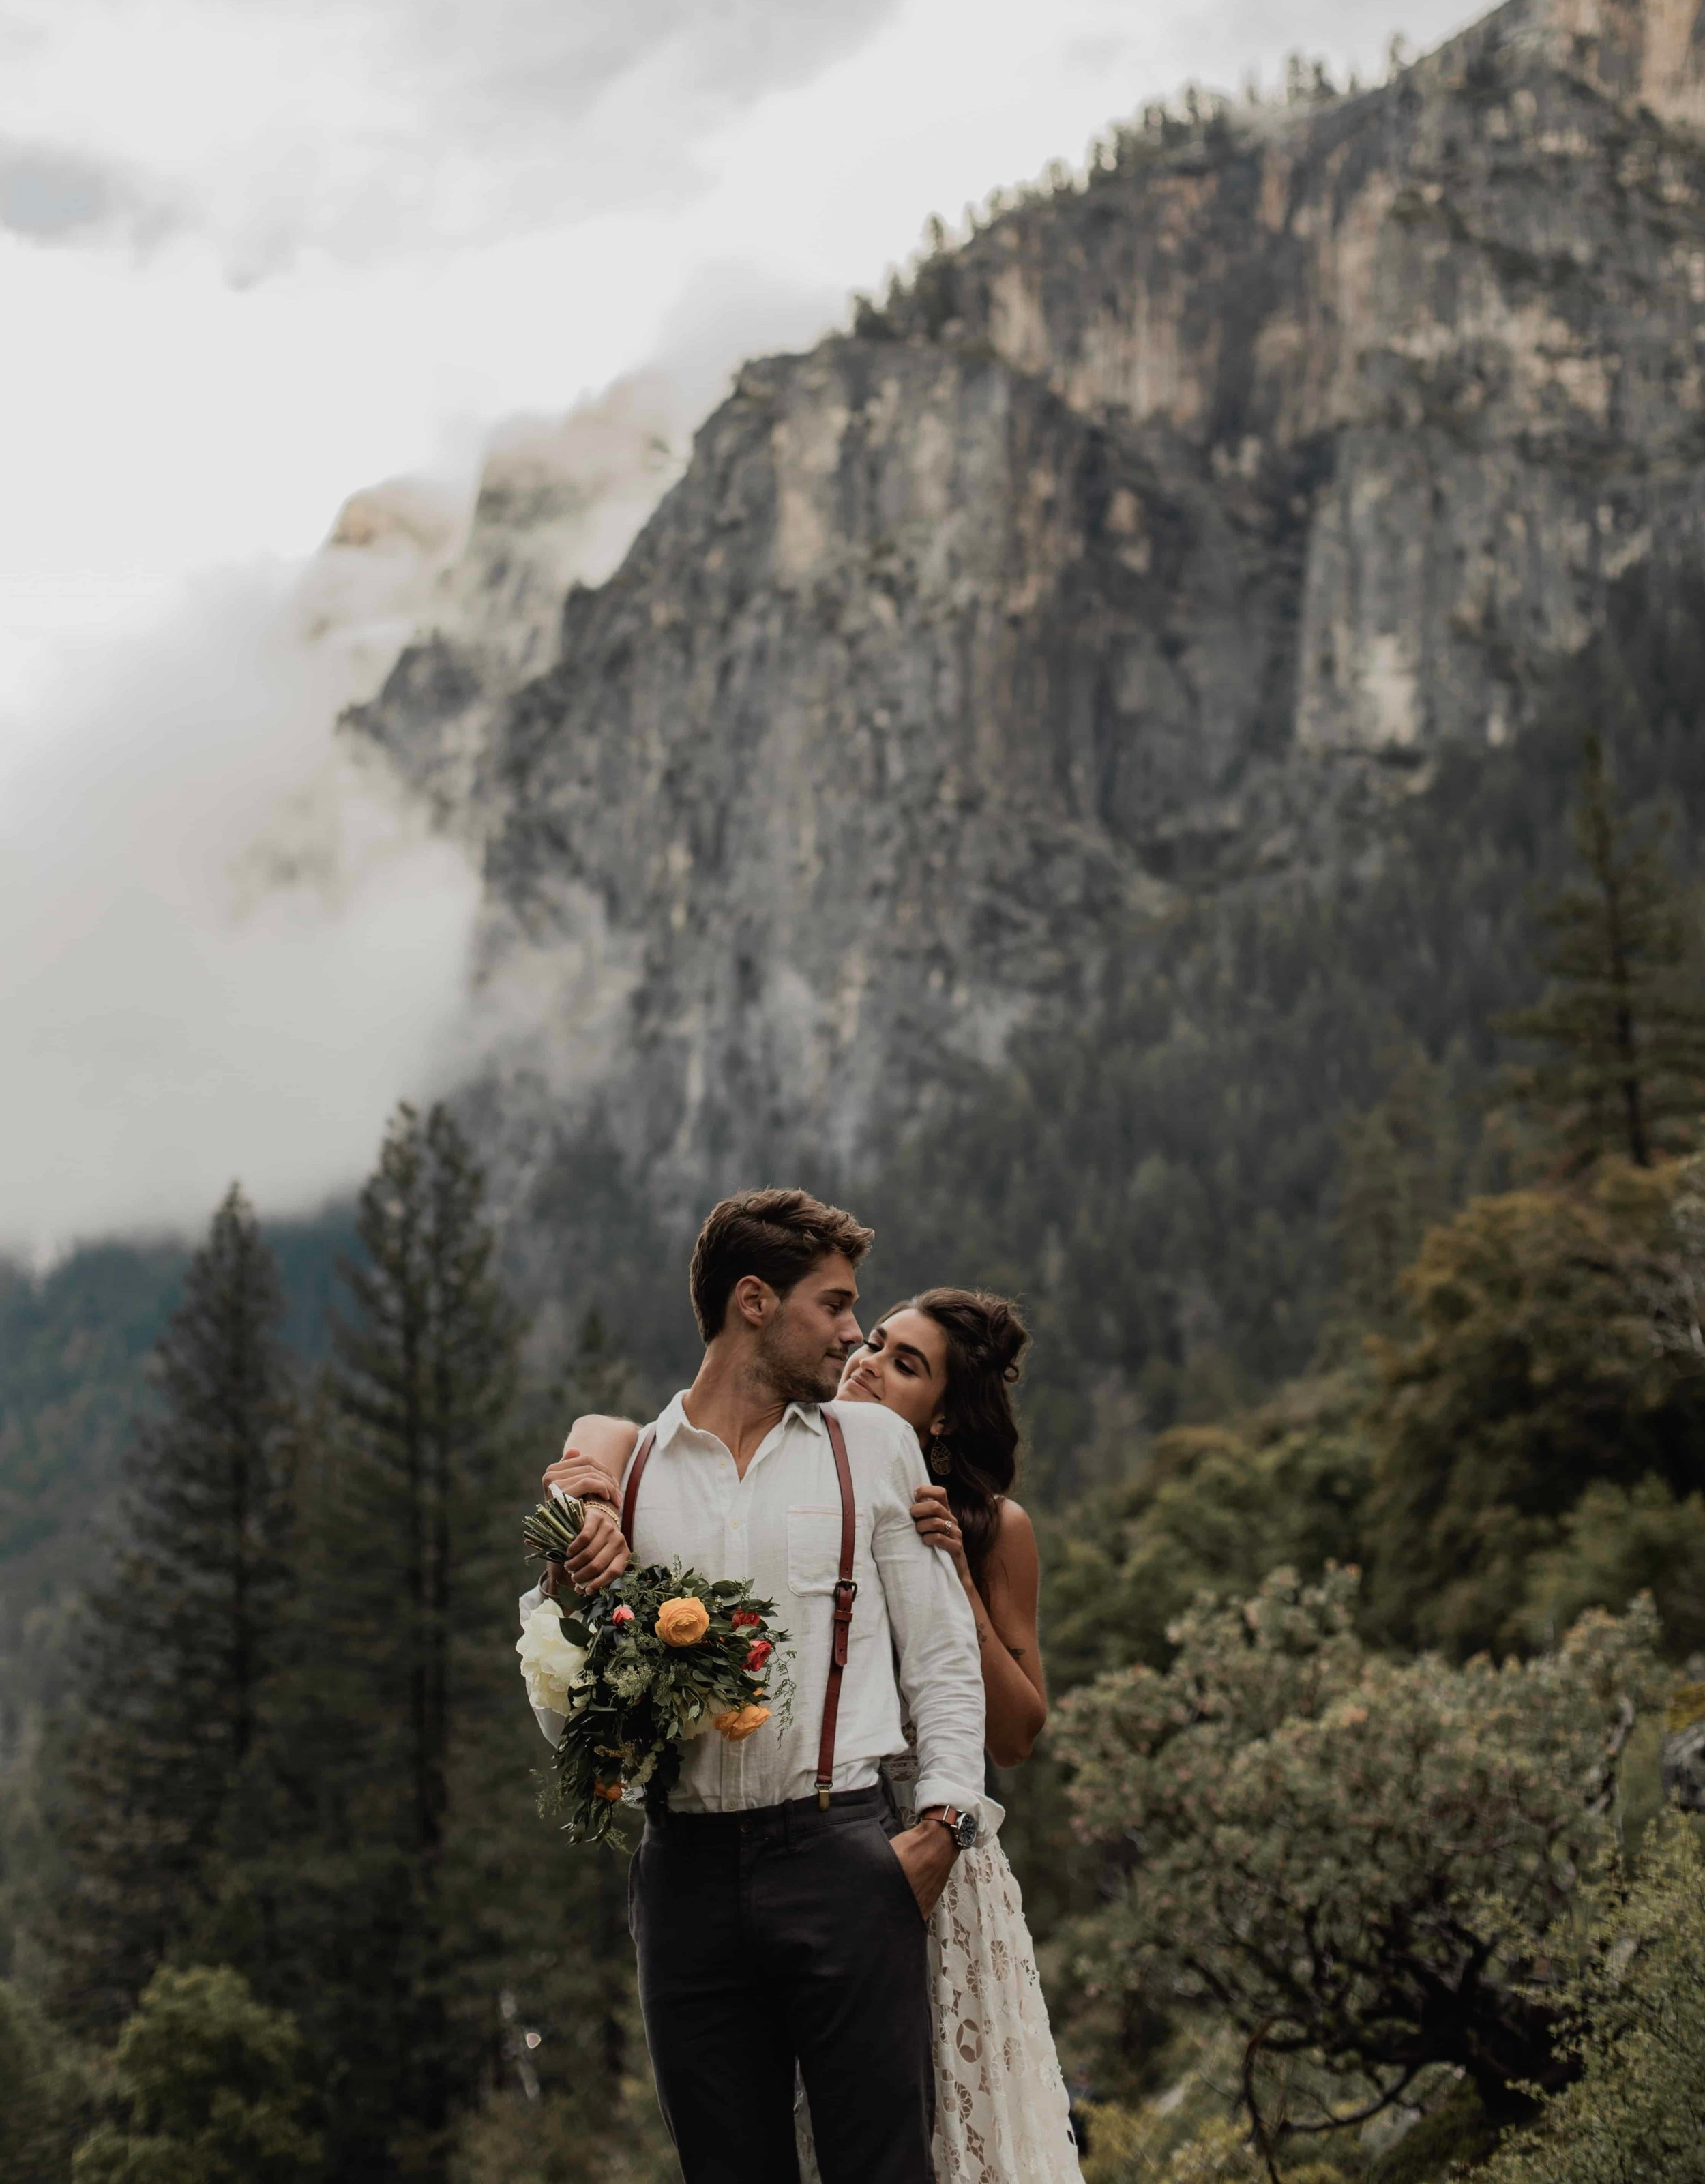 adventure elopement photographer capturing a couple in wedding outfits smiling at each other